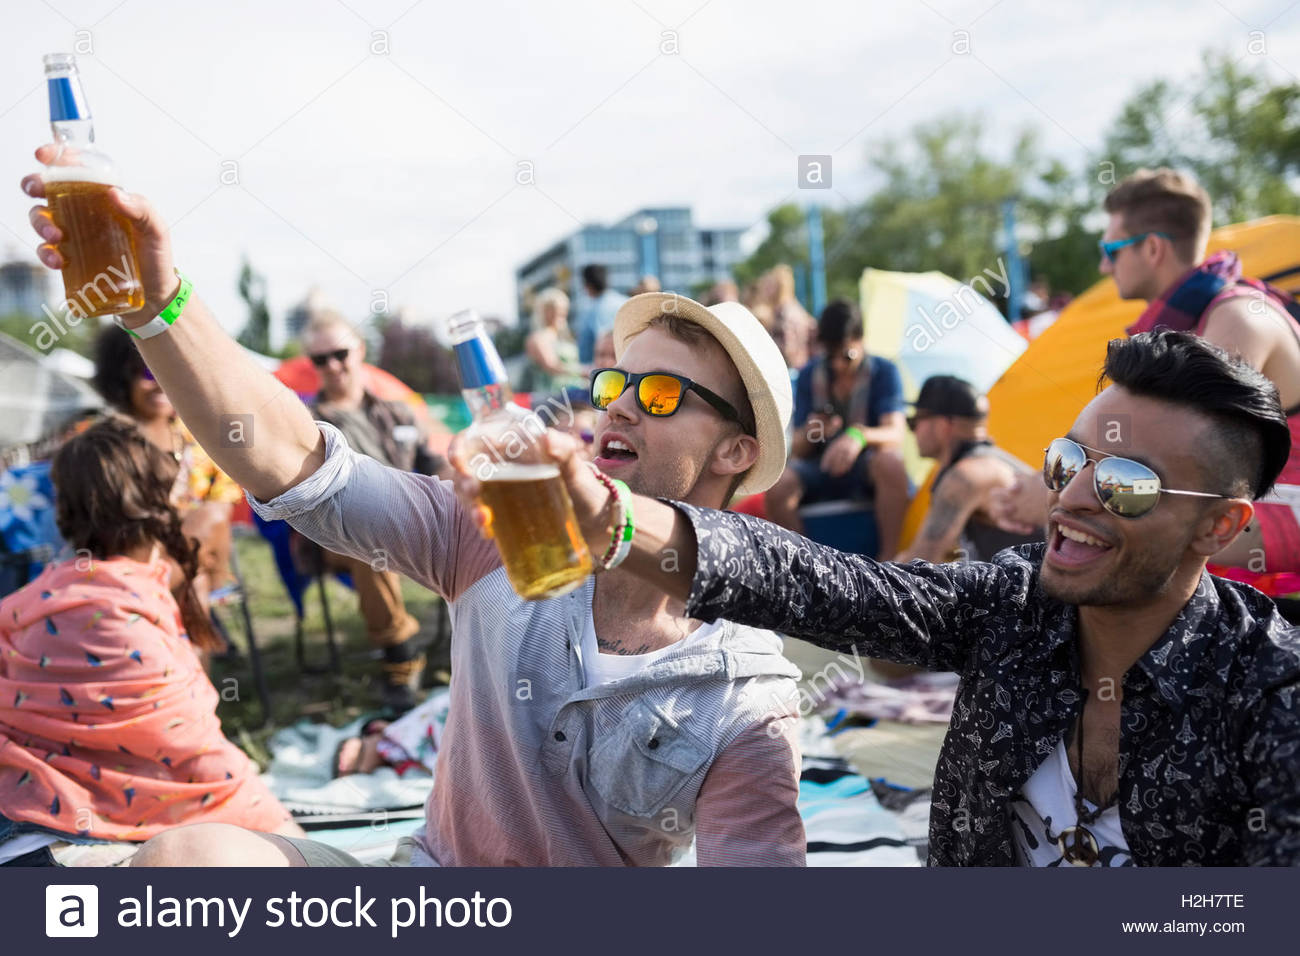 Jeunes gens qui buvaient de la bière cheering at summer music festival camping Photo Stock